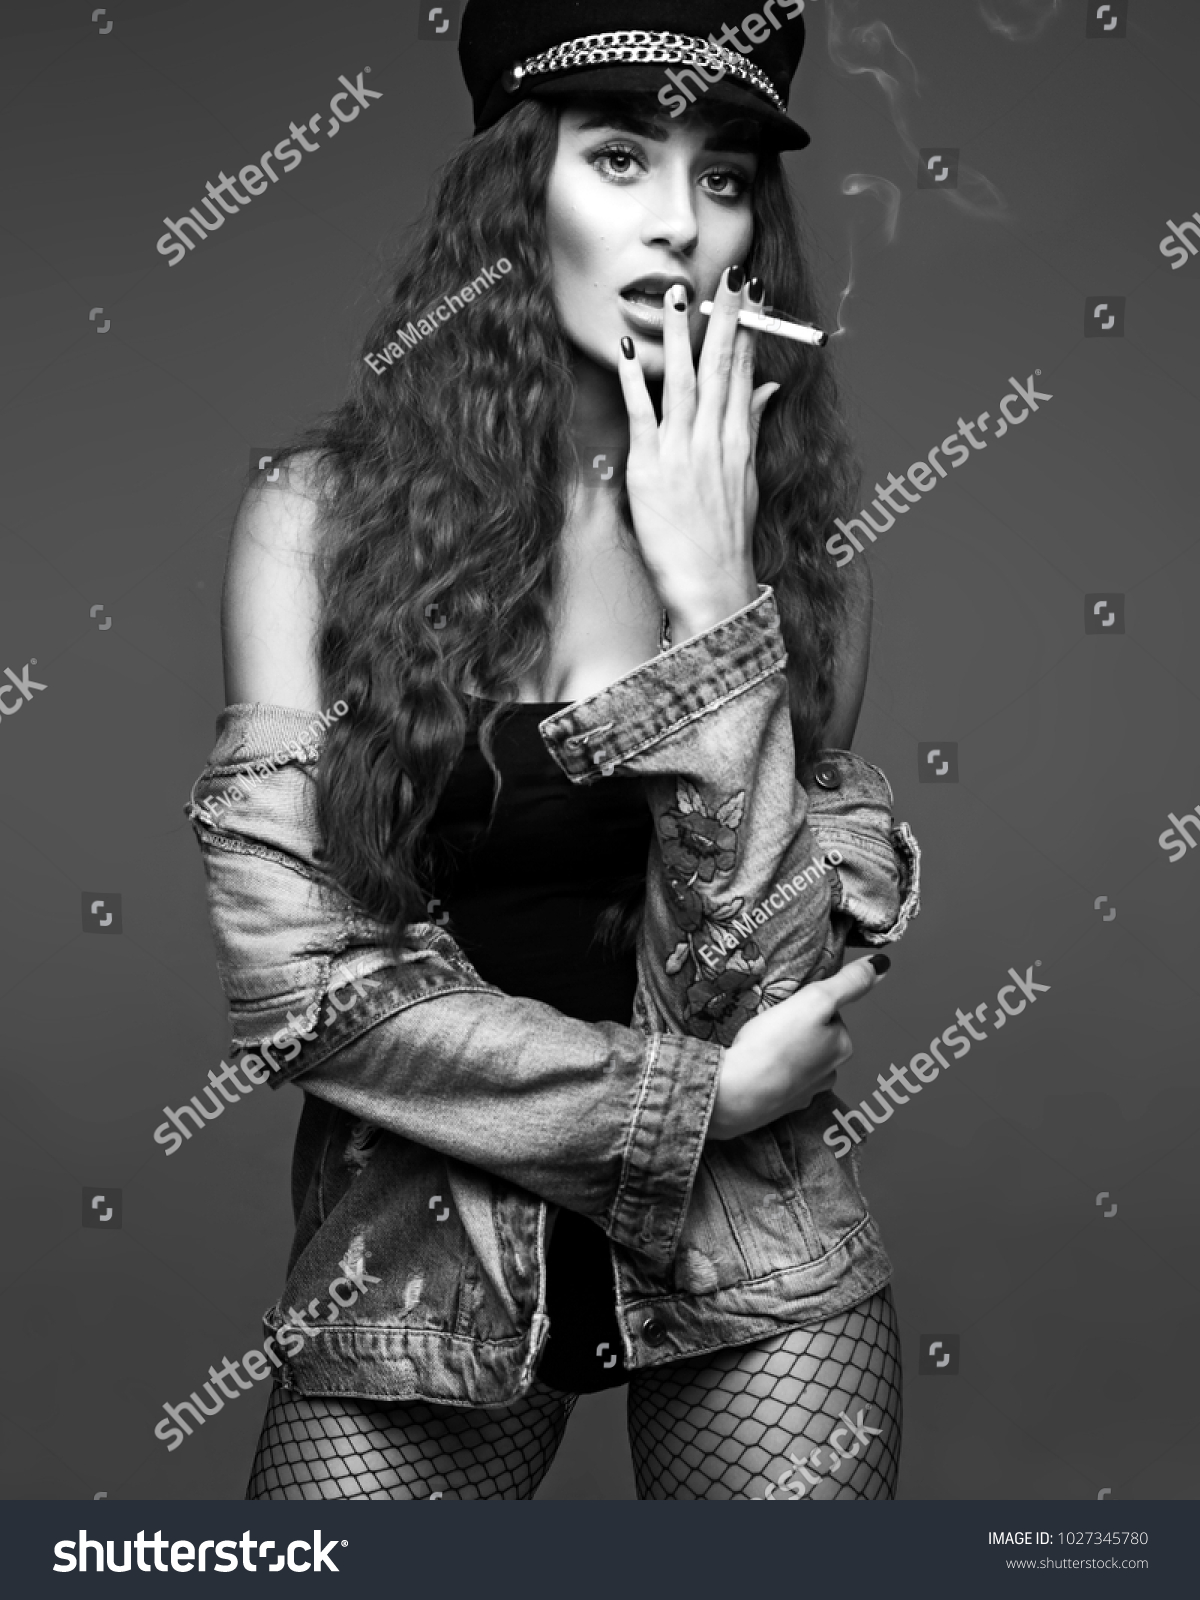 d5c79ea8f5 Black and white studio portrait of young pretty sexy woman with long  brunette curly hair in